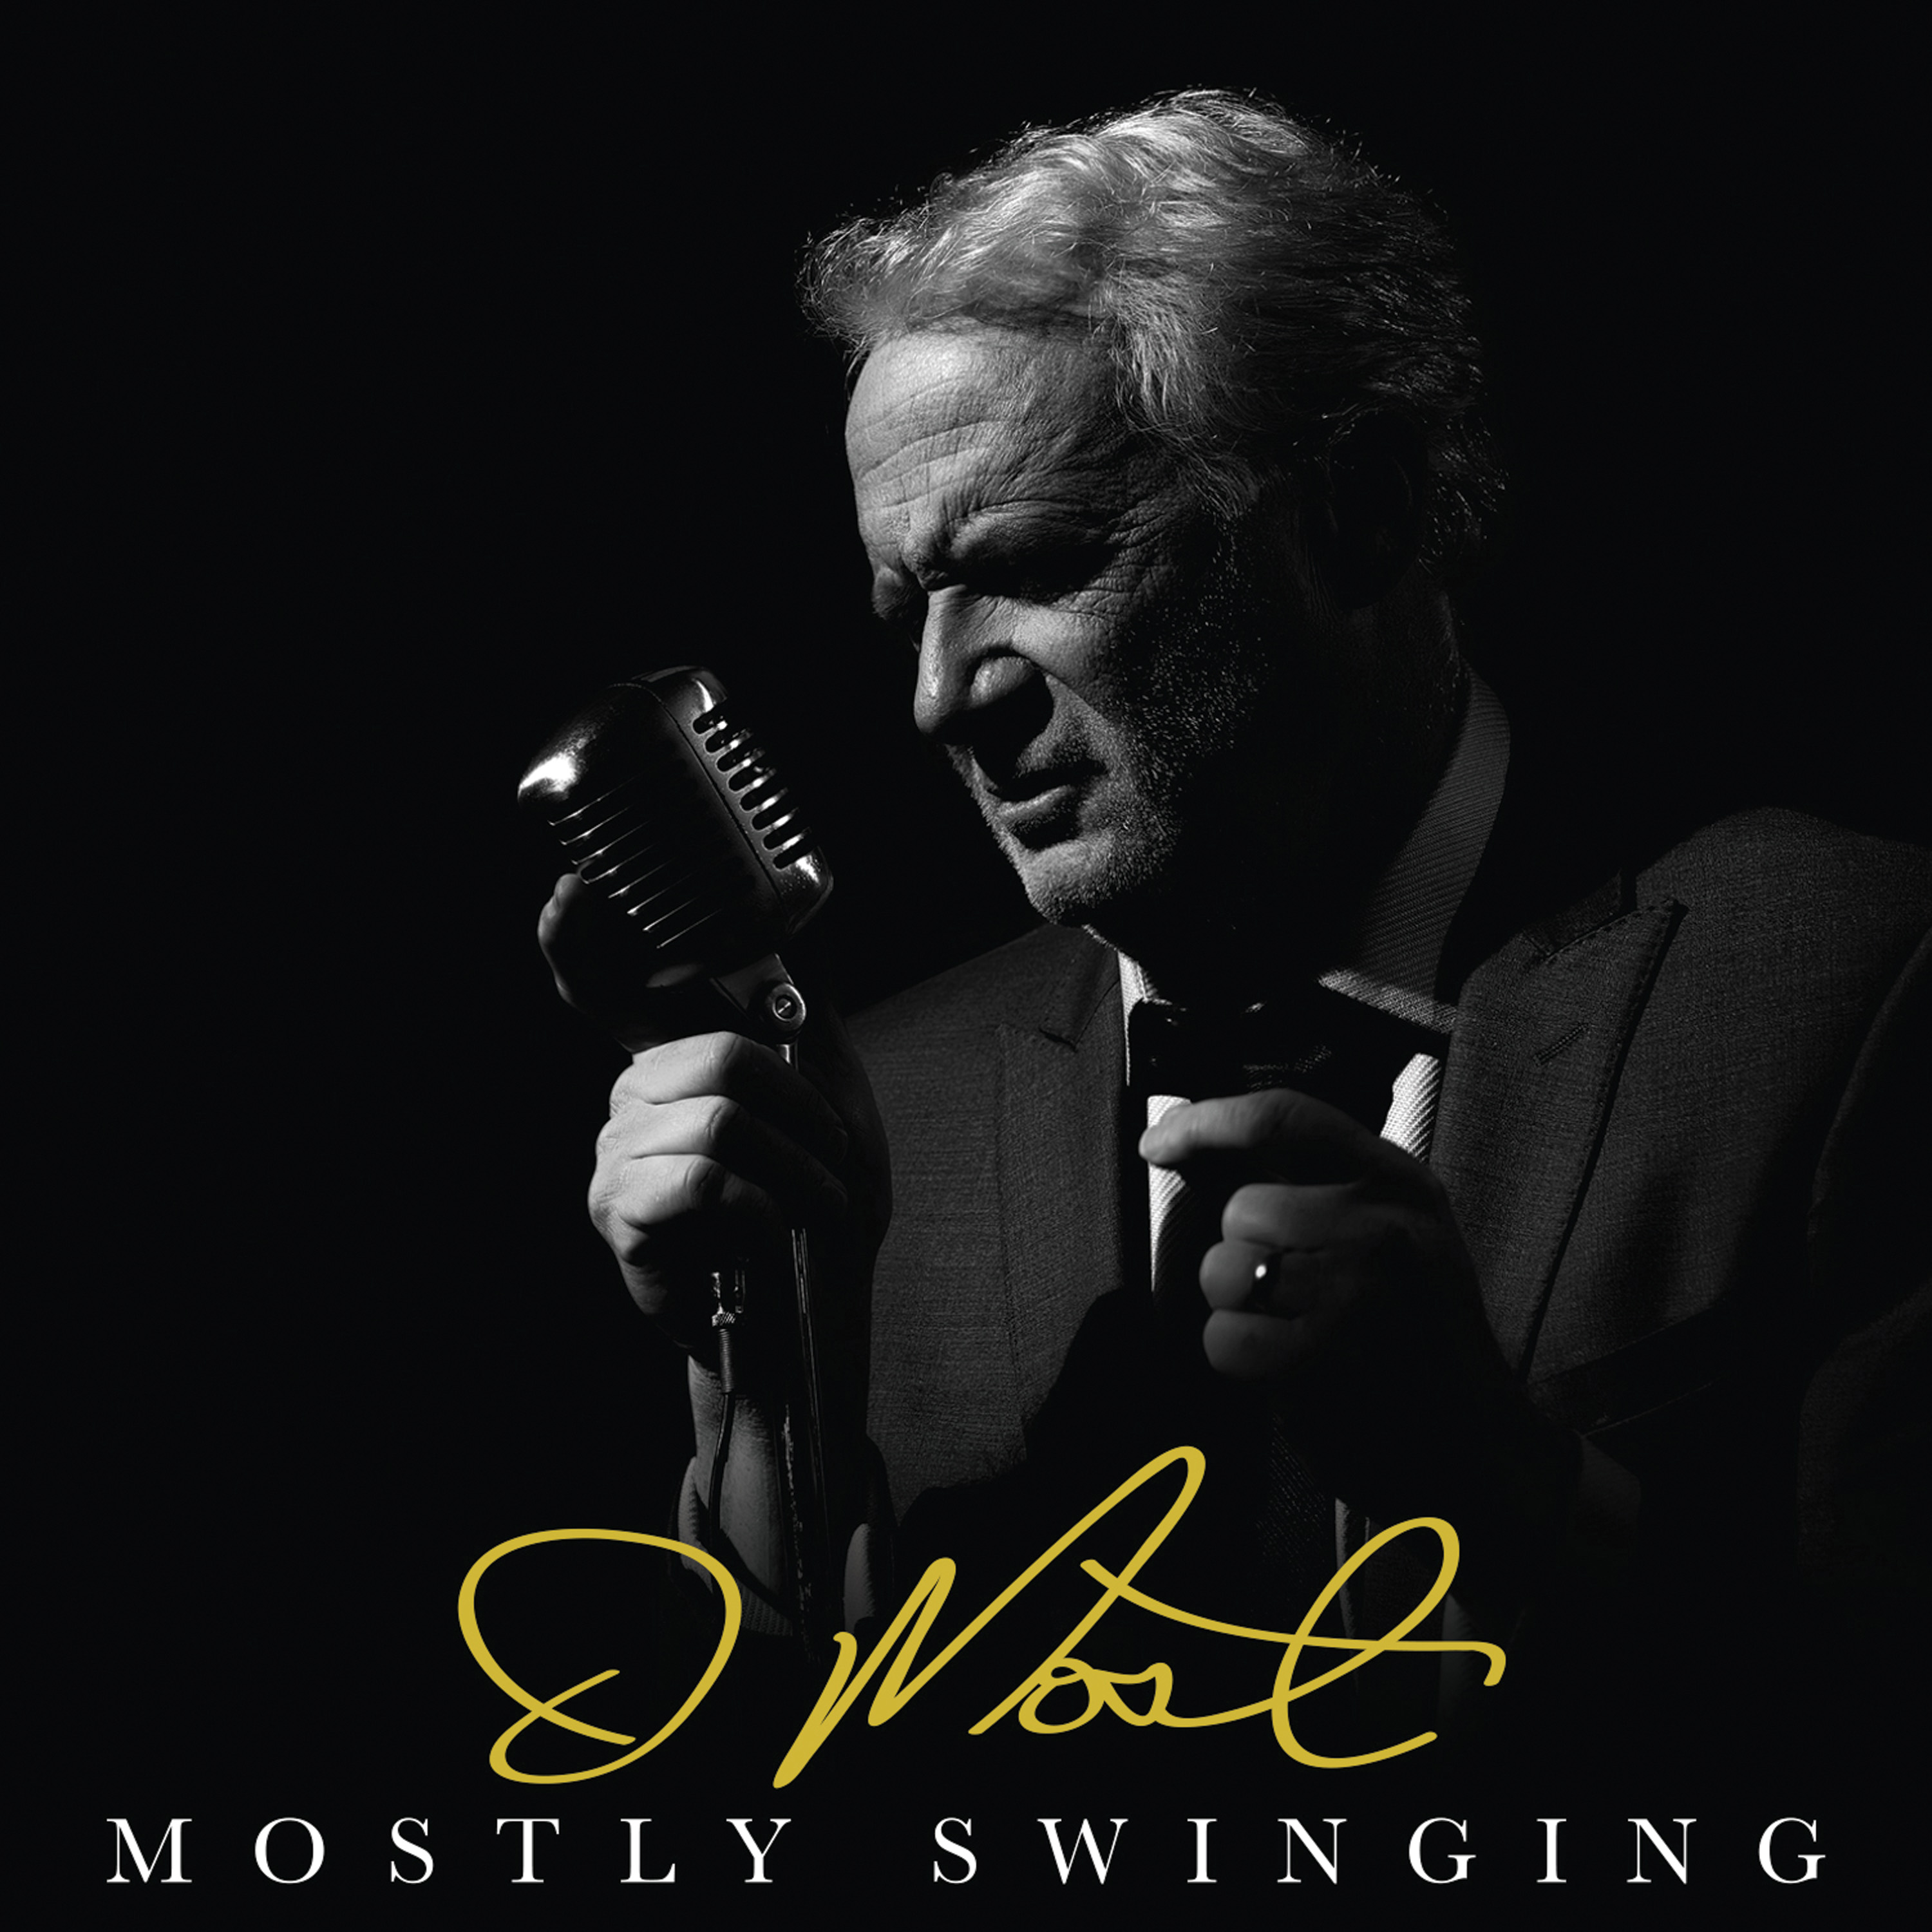 DONNY MOST - Mostly Swinging cover